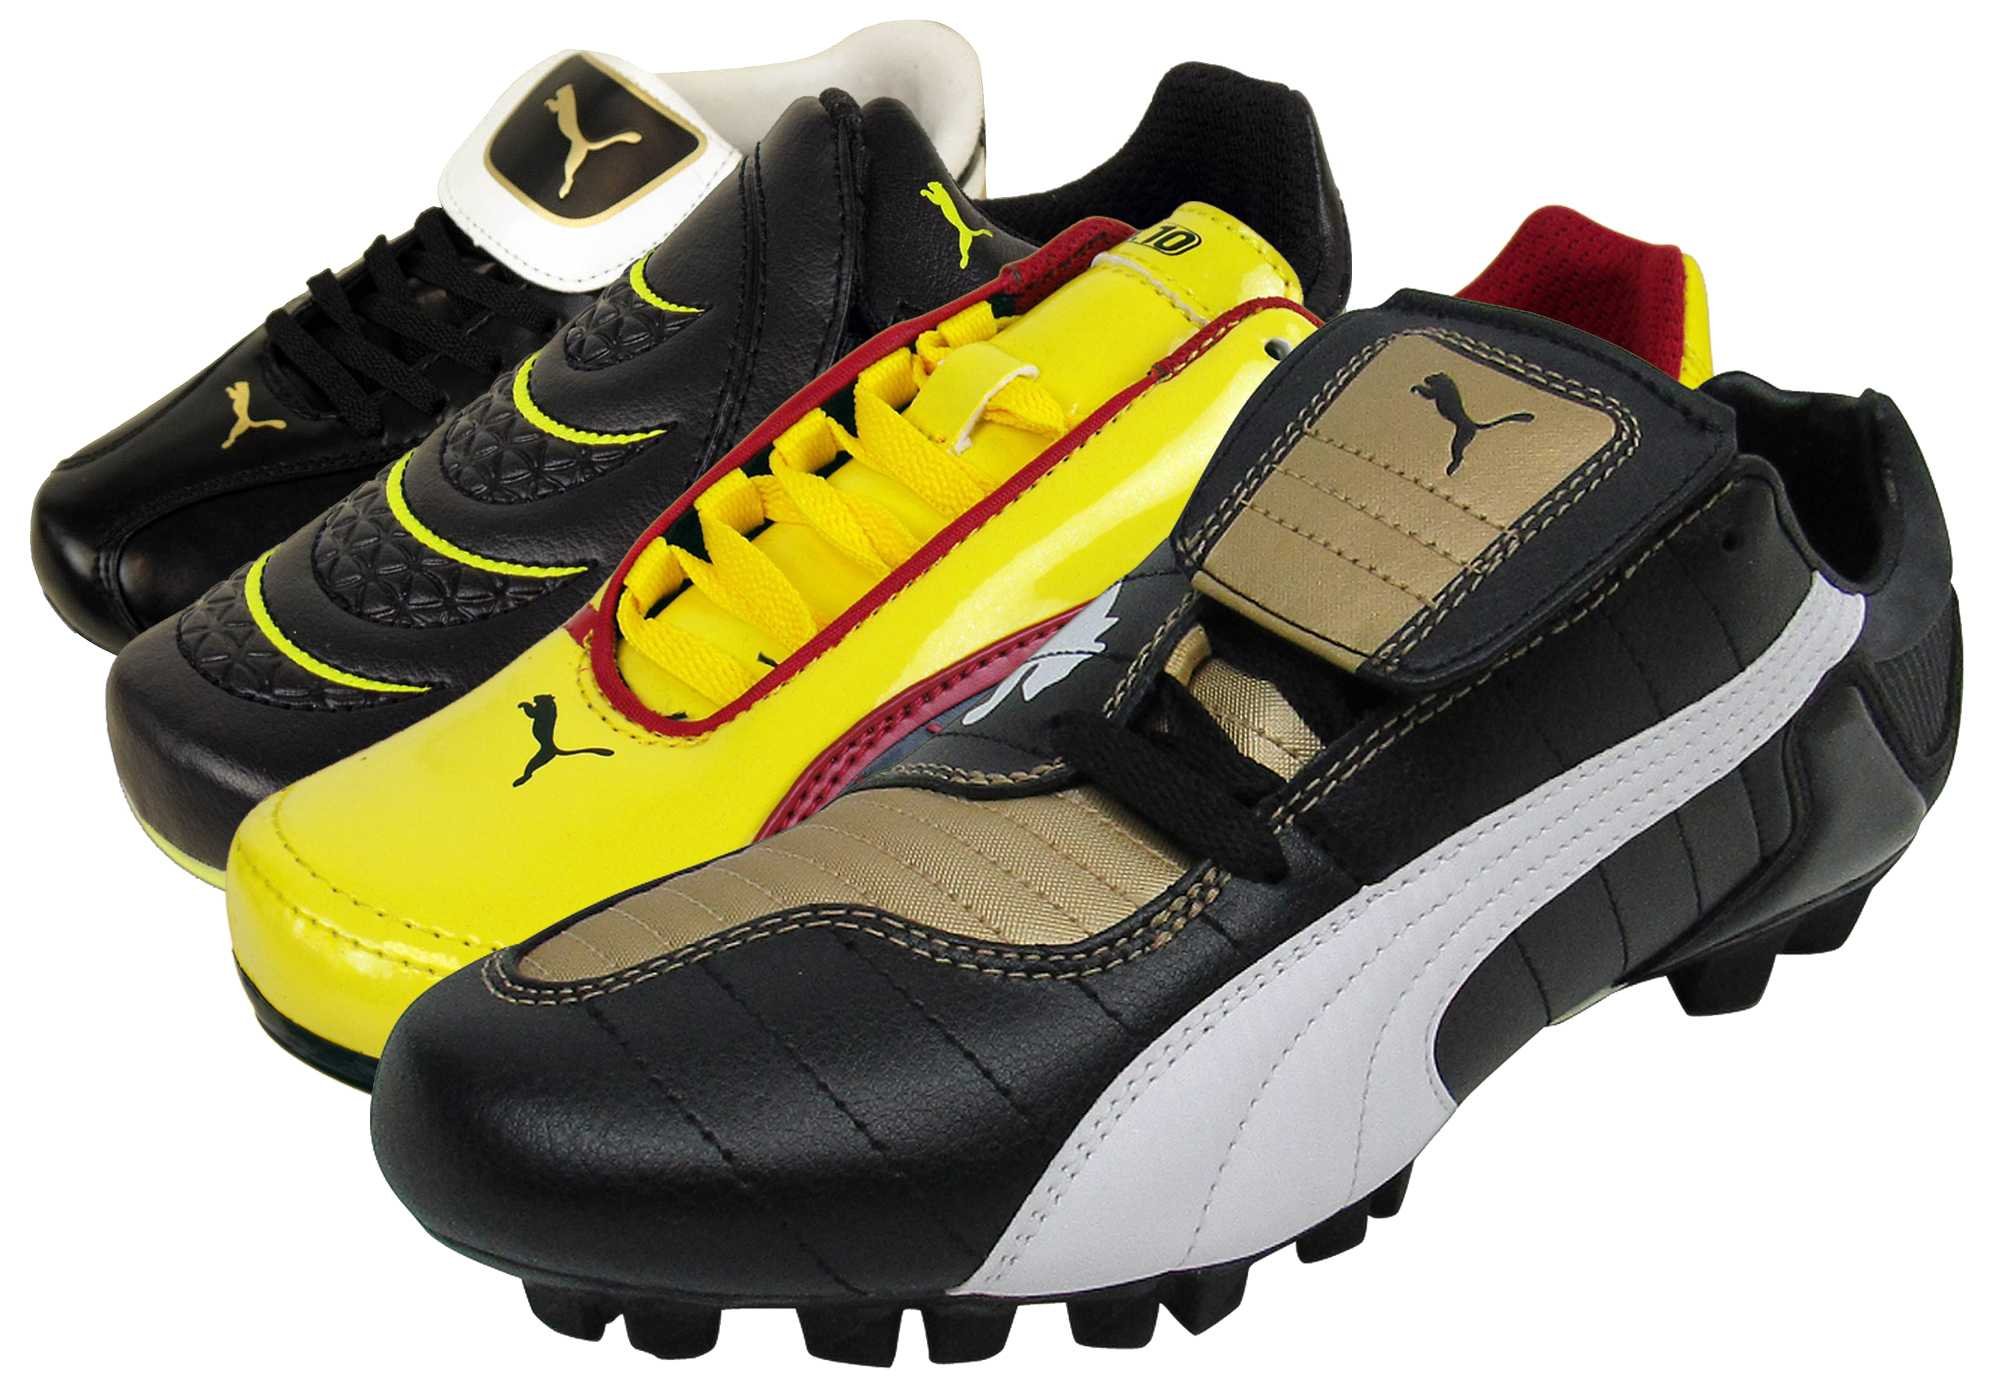 693c055e63e Details about Boys Puma FG Firm Ground Football Boots Junior Sizes Soccer  Boot Kids Size 10-6